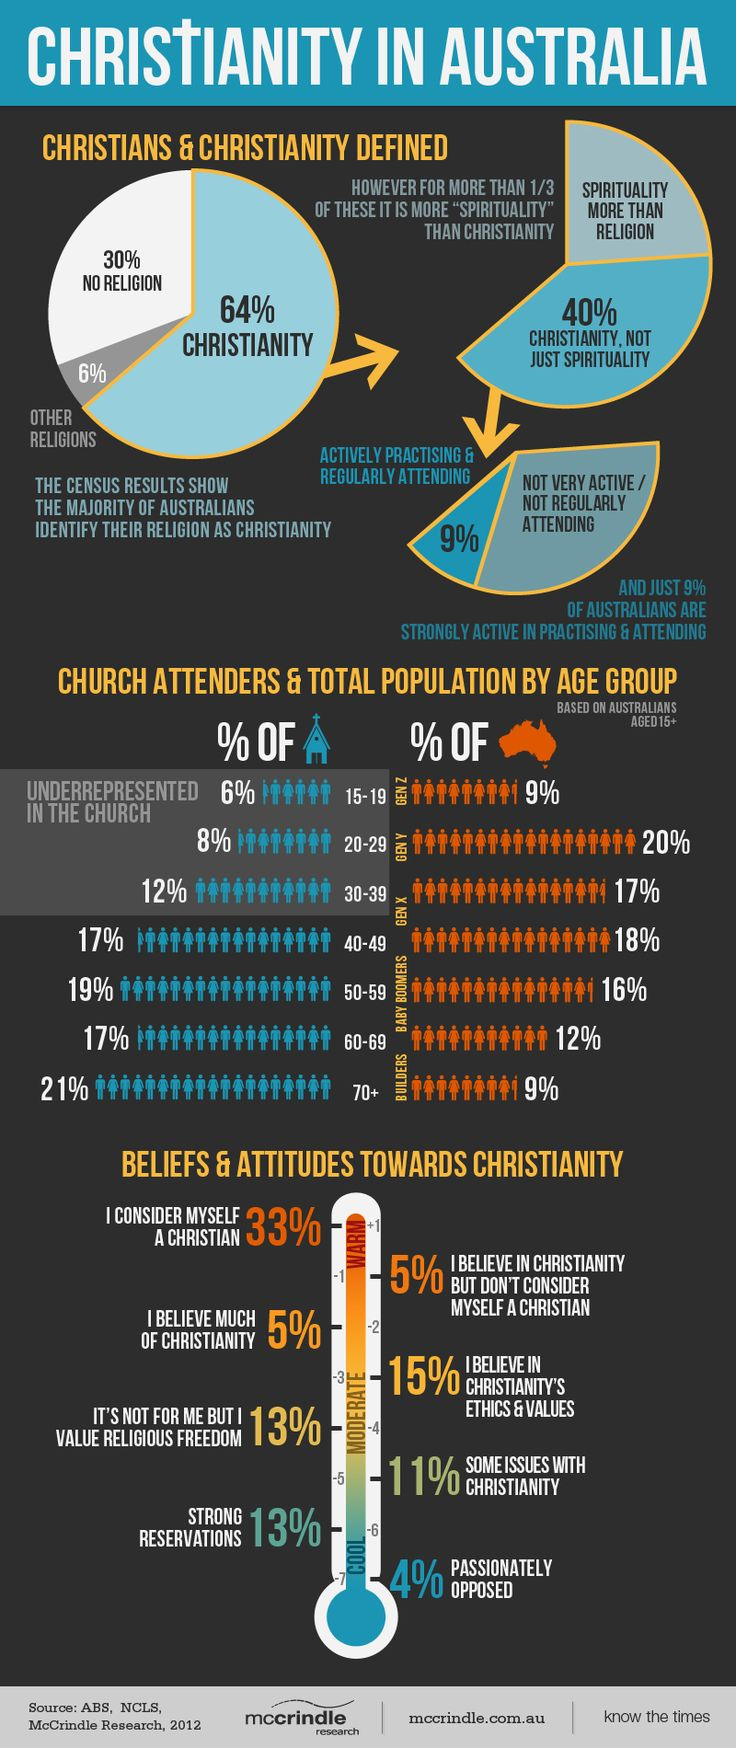 While our population is ever-increasing, Australia's church attendance is continuing to dwindle. And though the census results might show that the maj